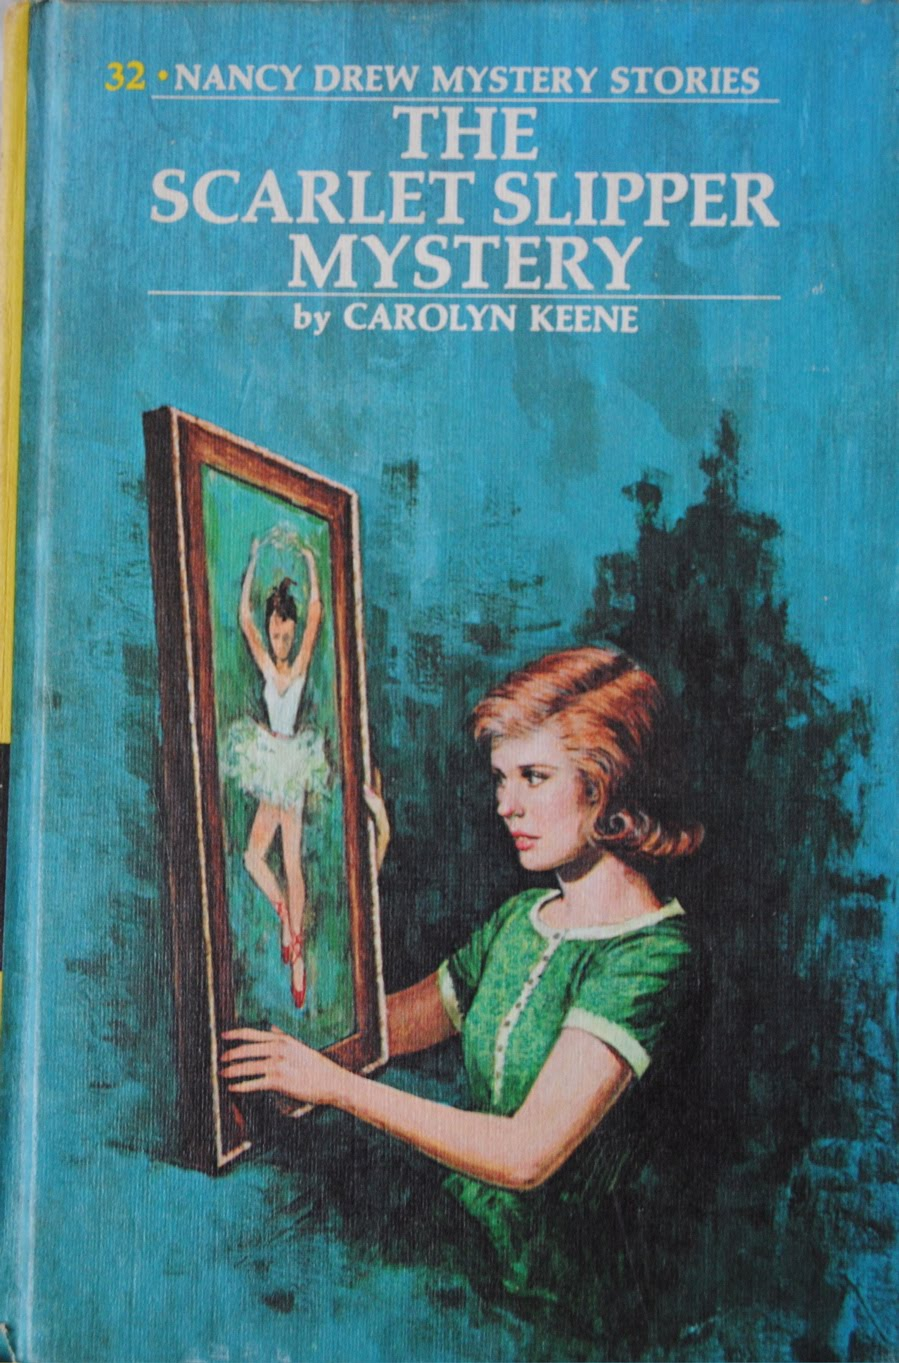 Nancy Drew Mystery Stories The Mystery at Lilac Inn No. 4 Carolyn Keene 1961 Vtg